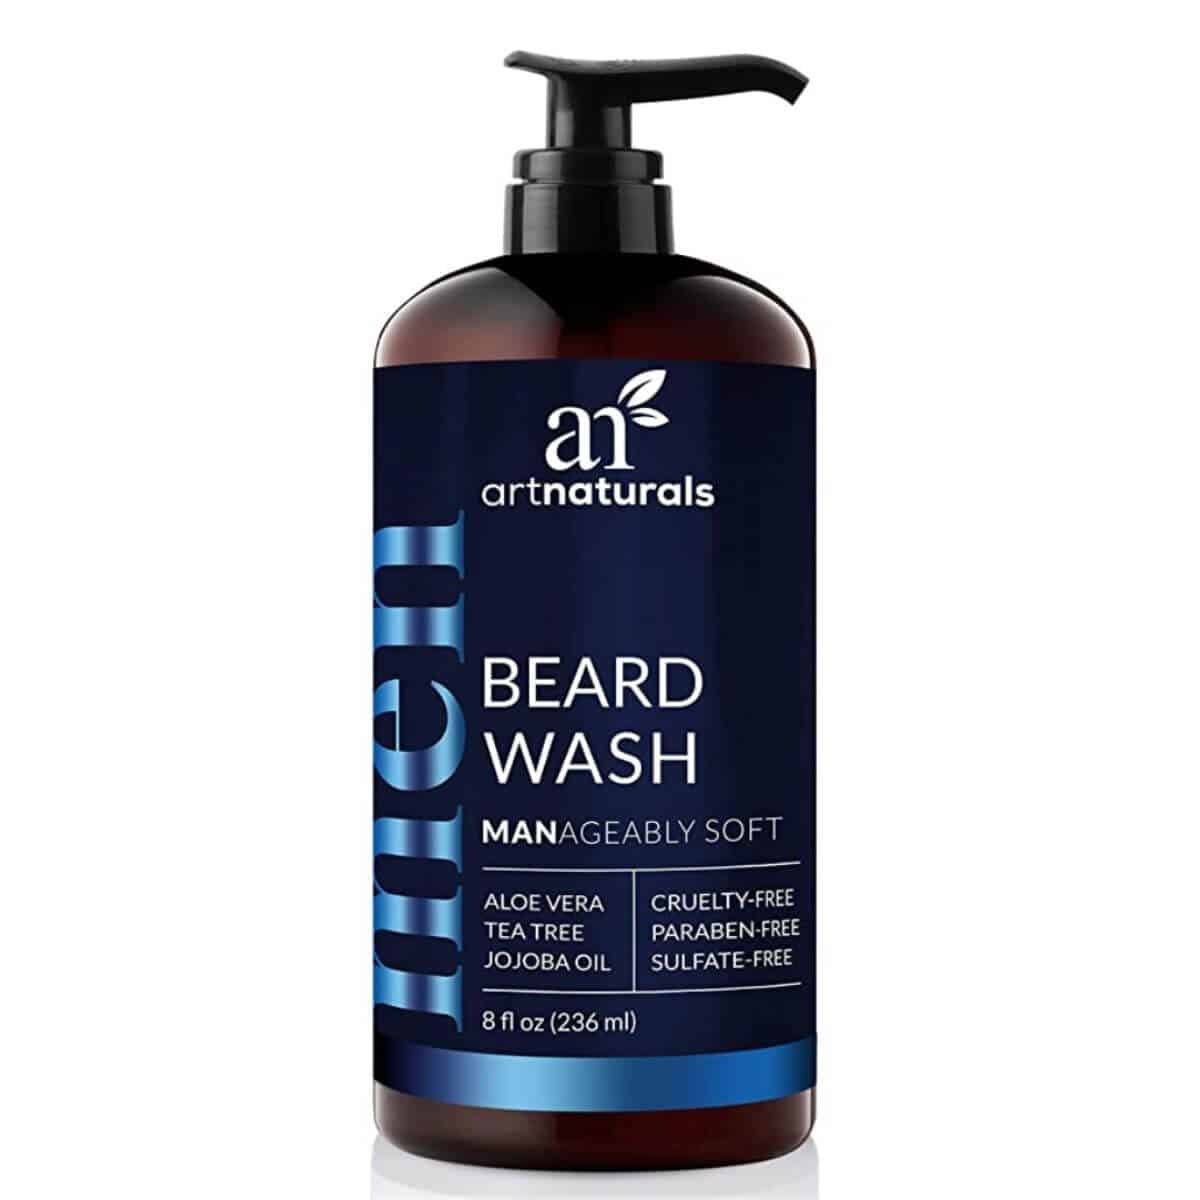 Bottle of beard wash.